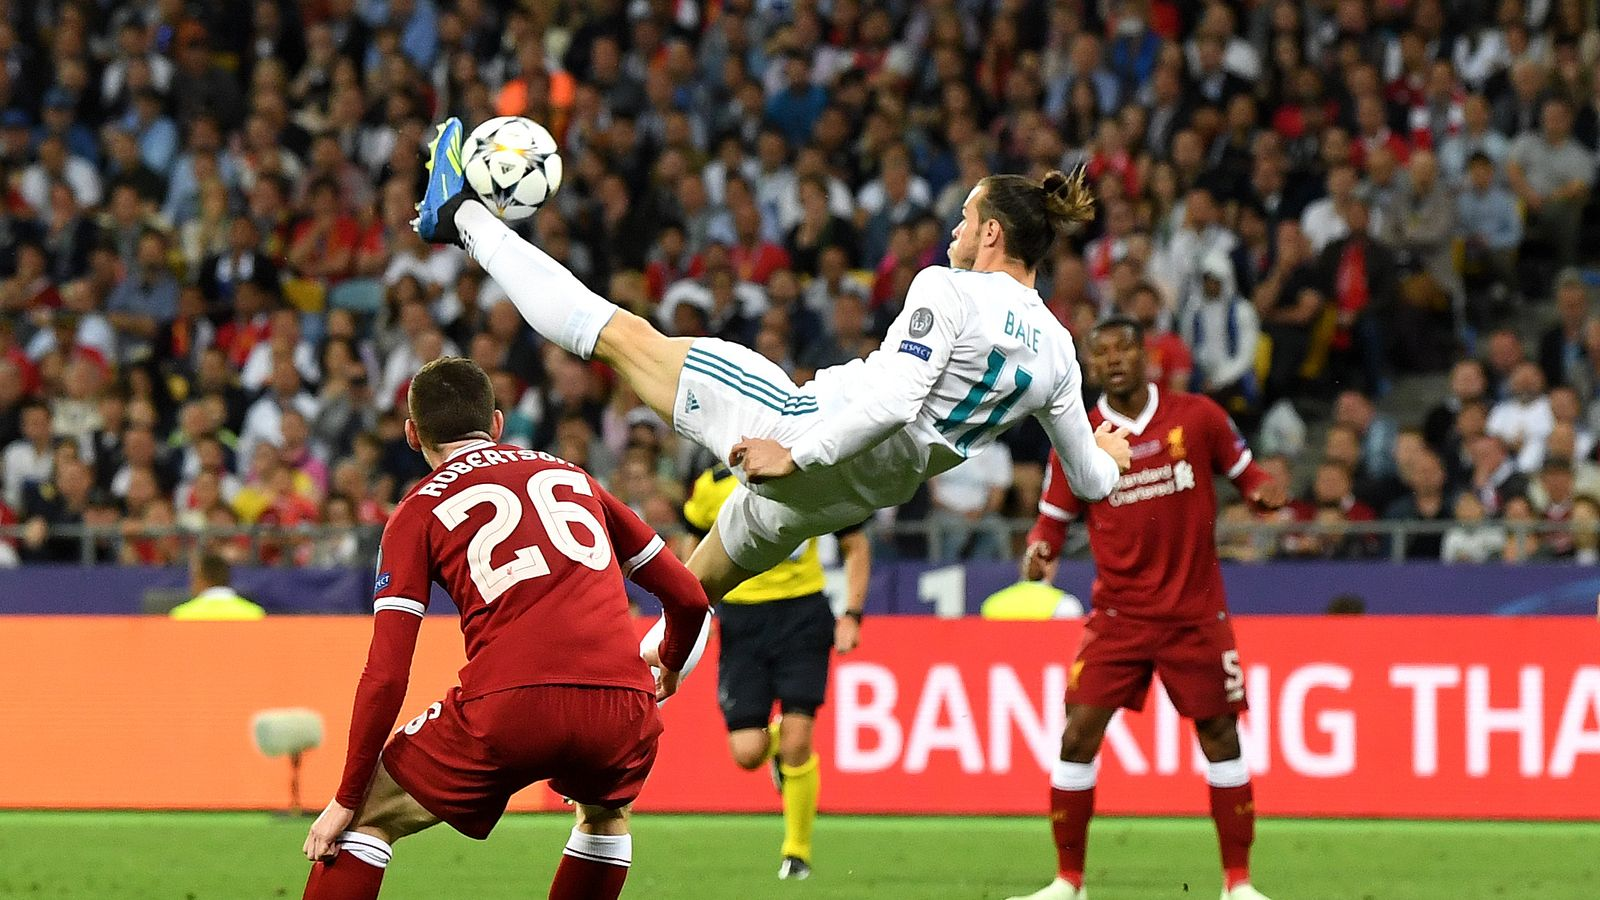 Bale sinks Liverpool dreams in Champions League final